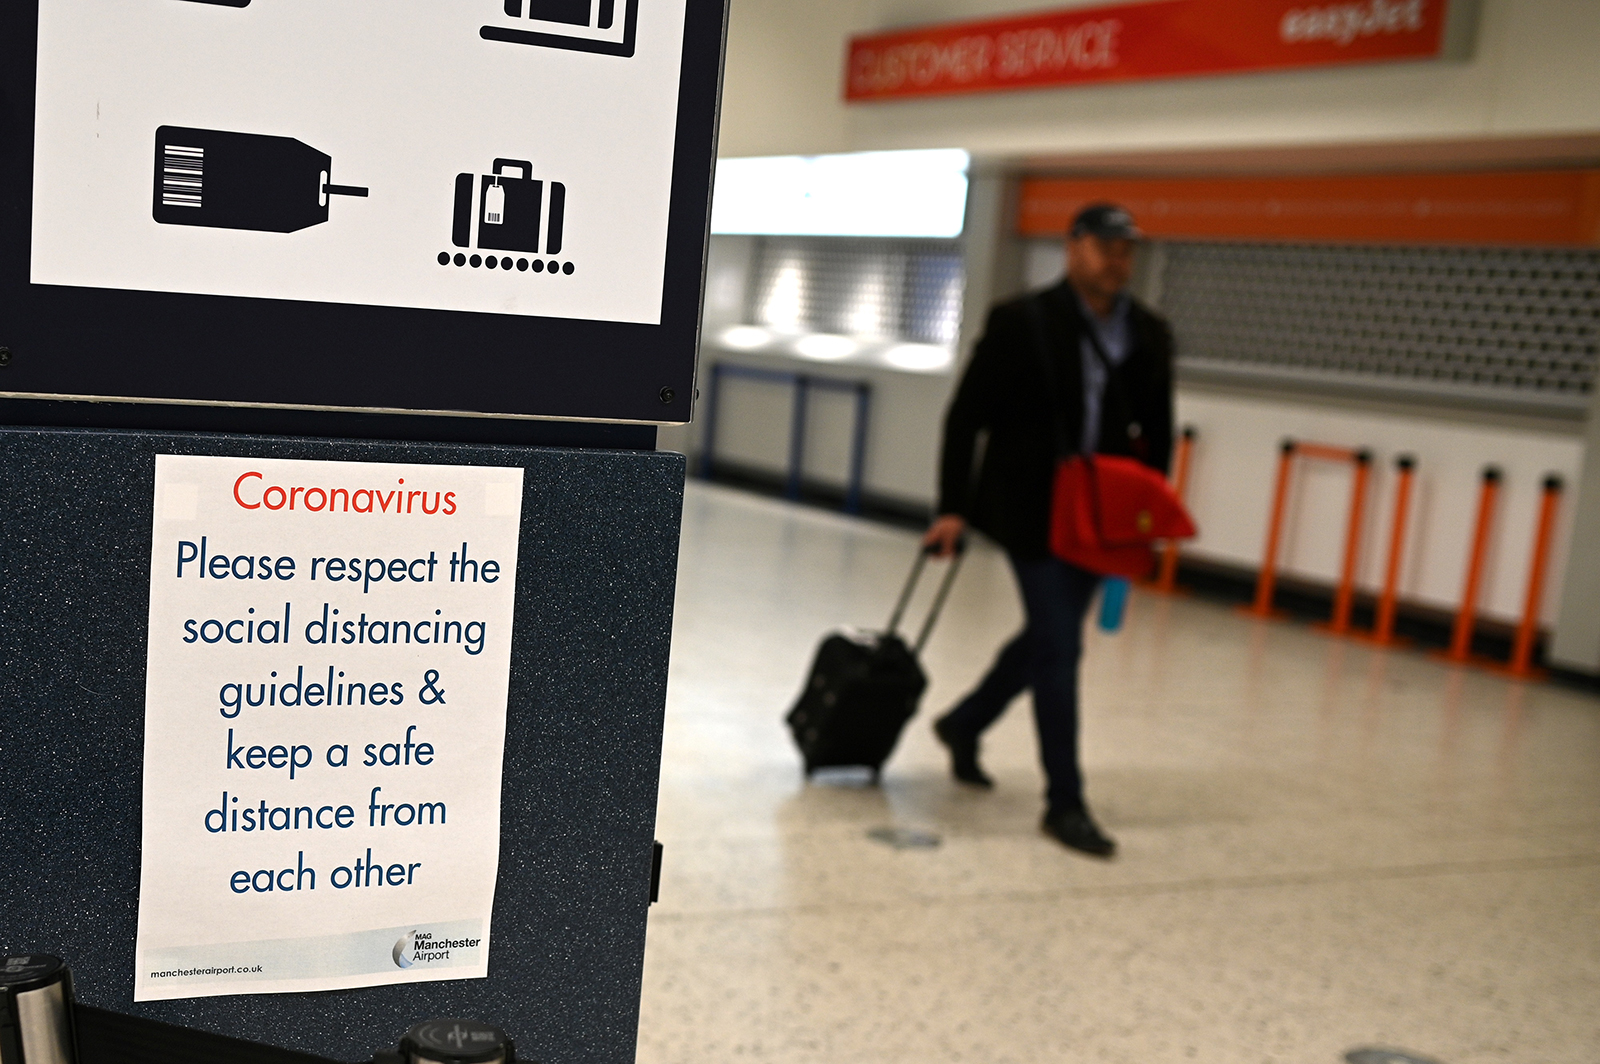 A passenger passes a sign reminding travelers to observe social distancing guidelines at almost-empty check-in desks in the departure hall at Terminal 1 of Manchester Airport in Manchester, England on May 11.